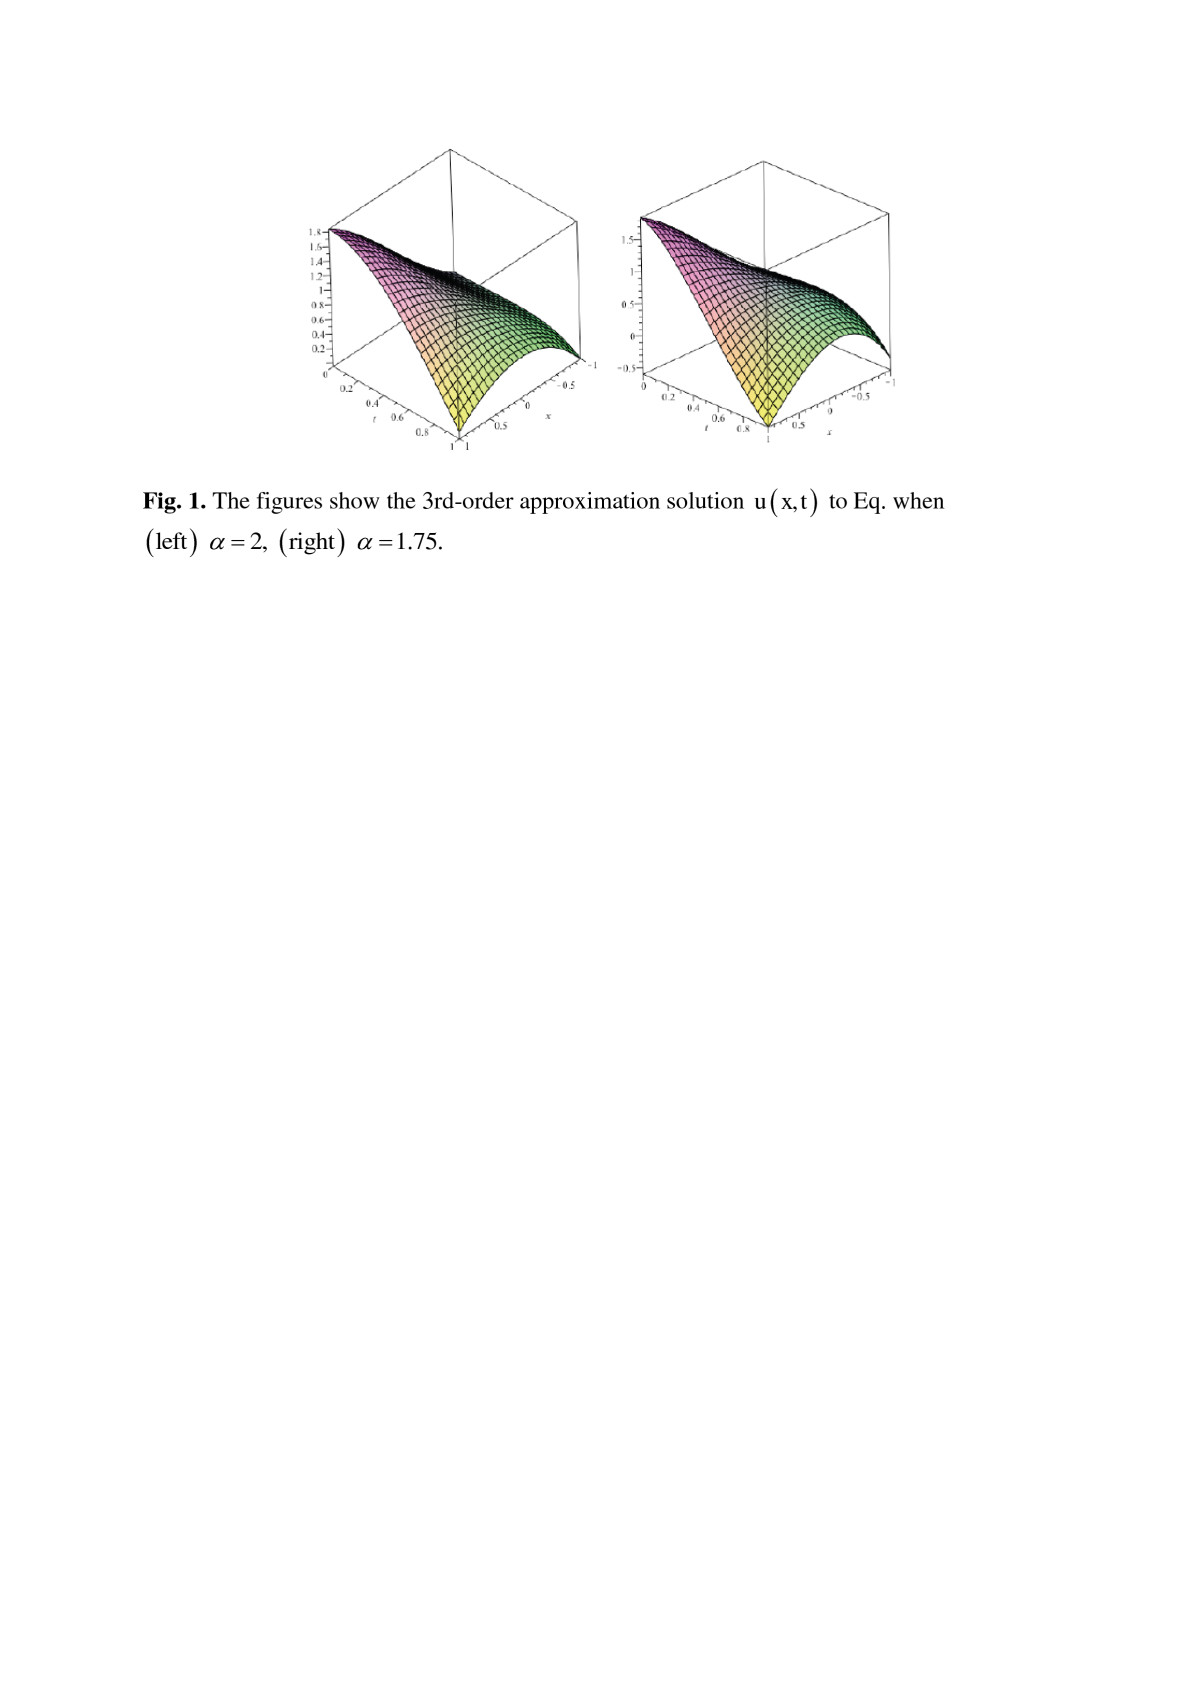 https://static-content.springer.com/image/art%3A10.1186%2F1687-1847-2012-187/MediaObjects/13662_2012_Article_306_Fig1_HTML.jpg